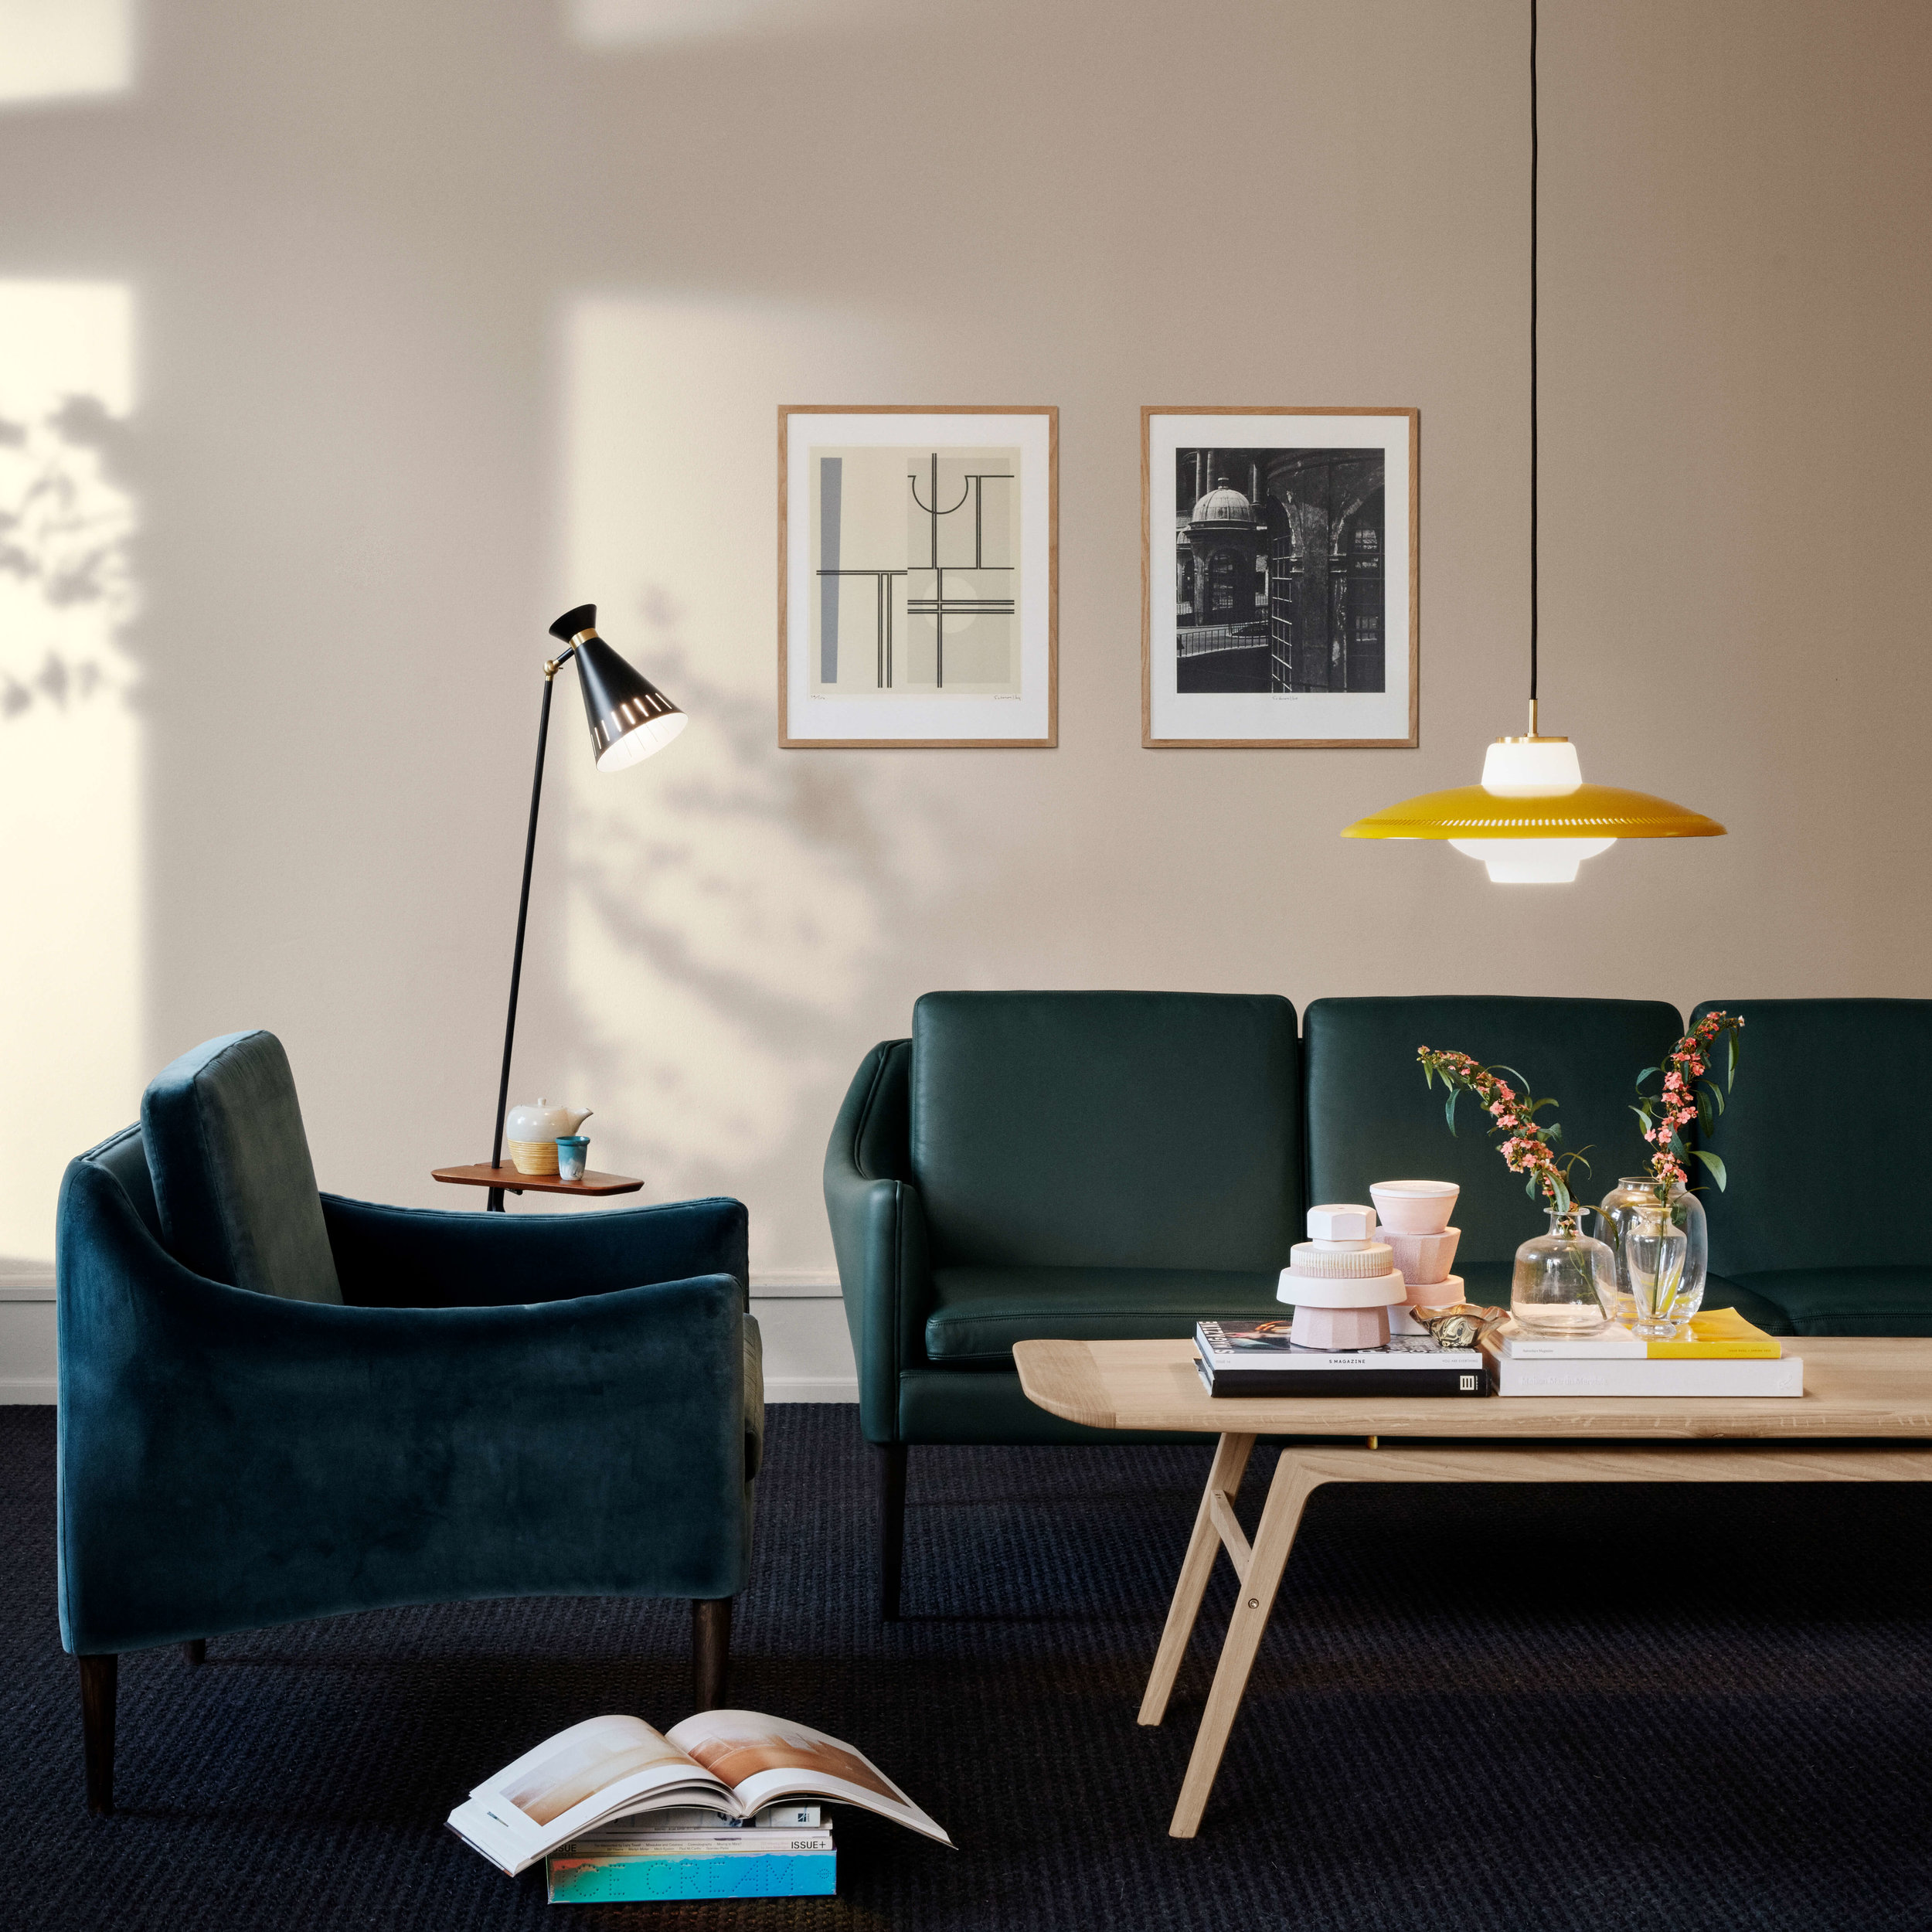 Warm Nordic  'Mr. Olsen' Lounge Chair  and  Sofa ,  'Opal' Shade Pendant